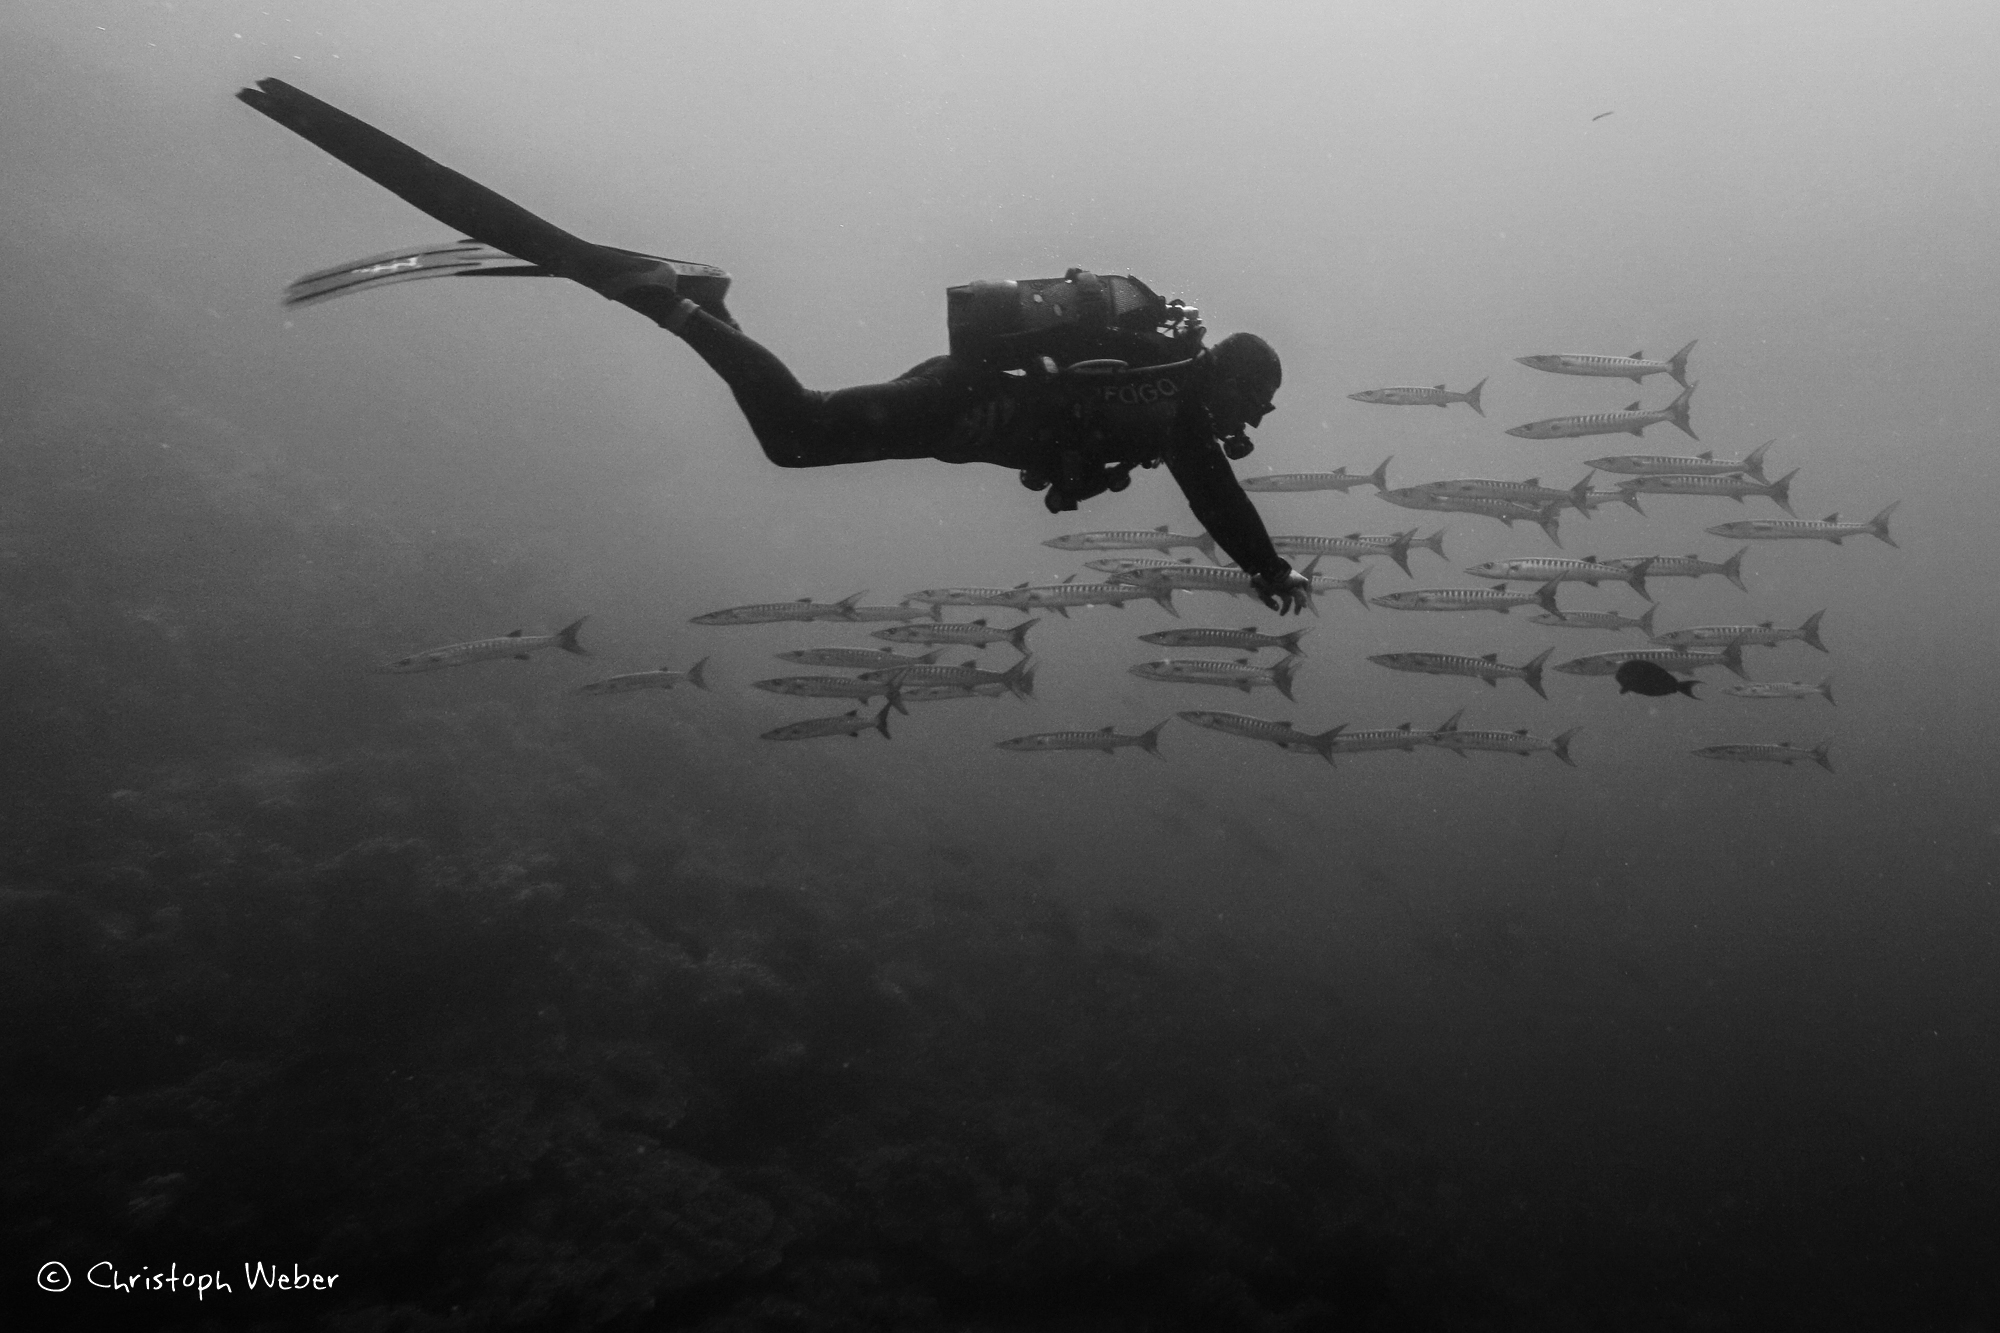 Scuba diver and barracuda silhouettes - Black and White pic